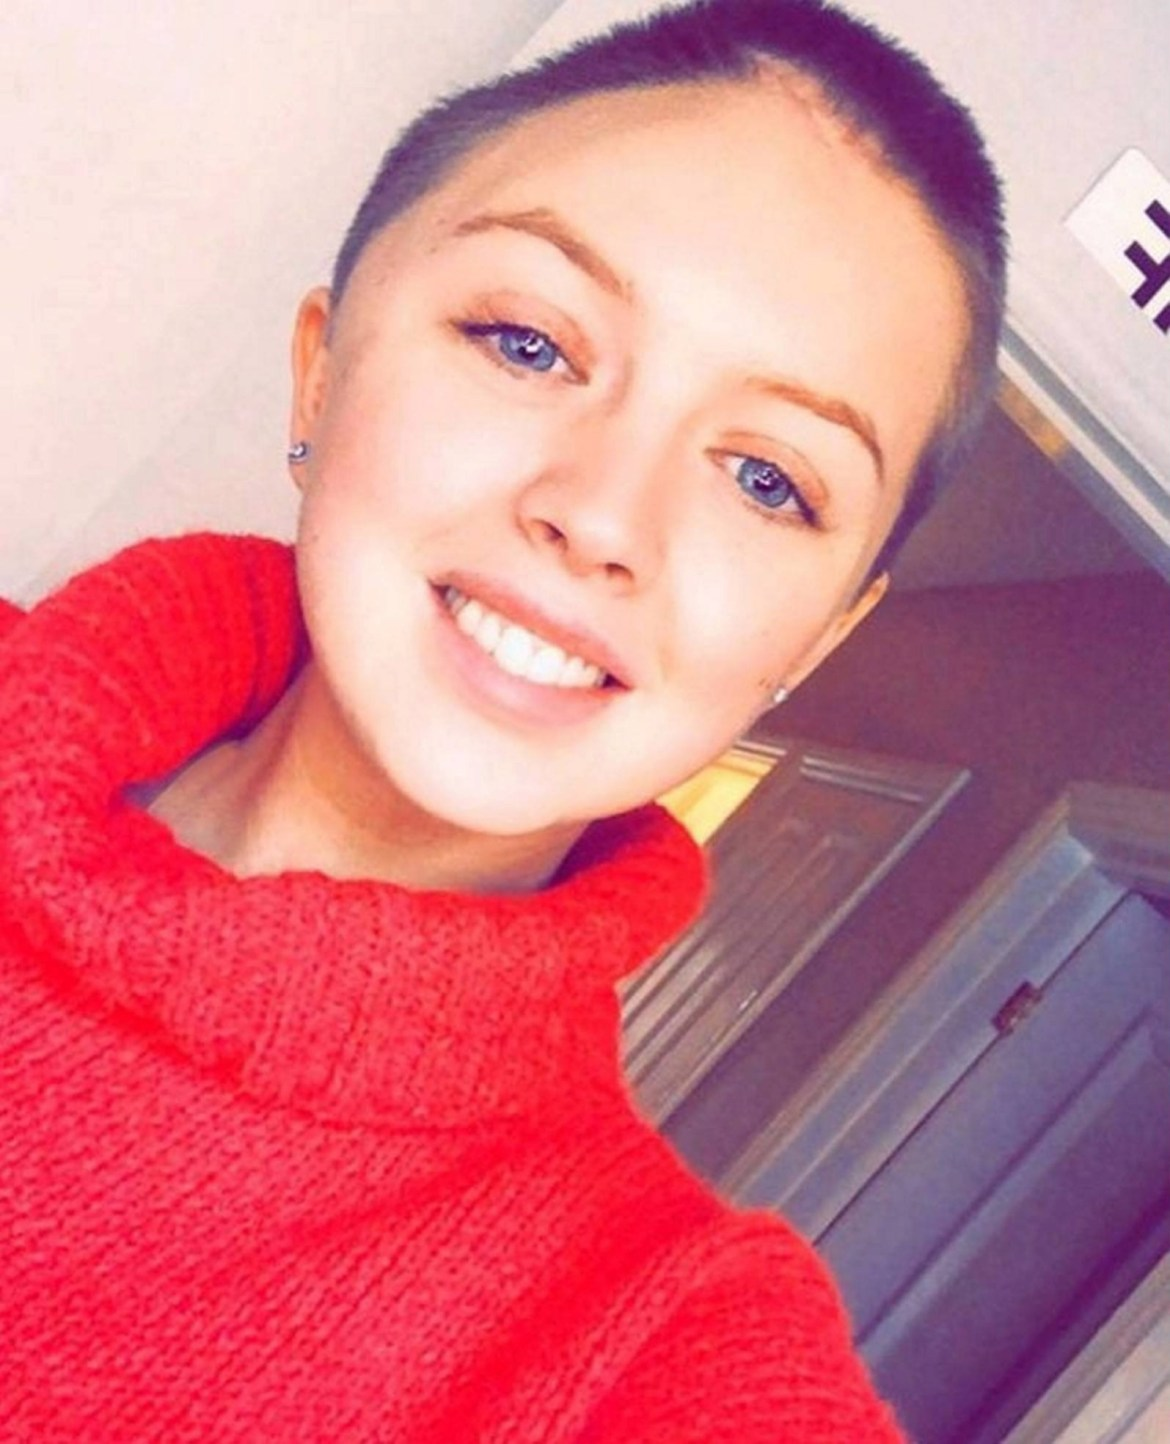 Jade Henderson is lucky to be alive after collapsing on a night out with friends